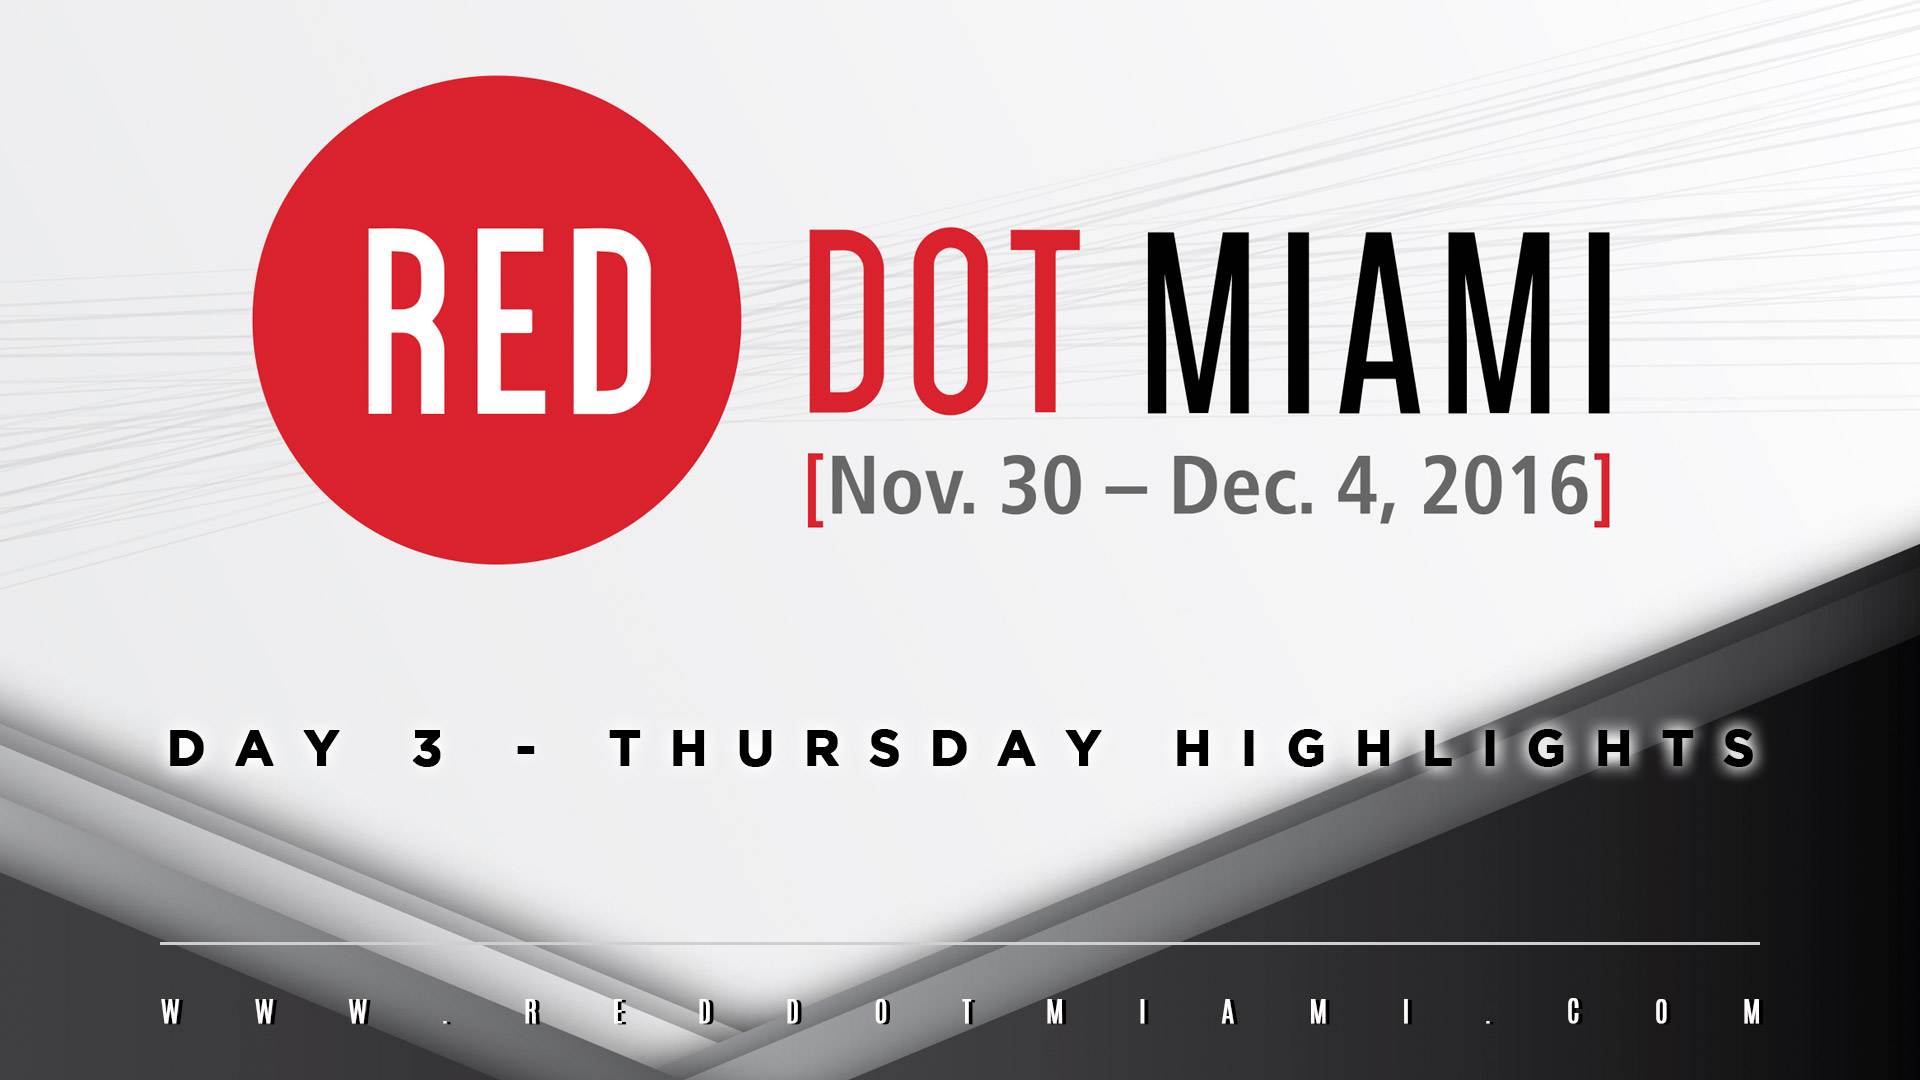 Red Dot Miami 2016 - Thursday Highlights